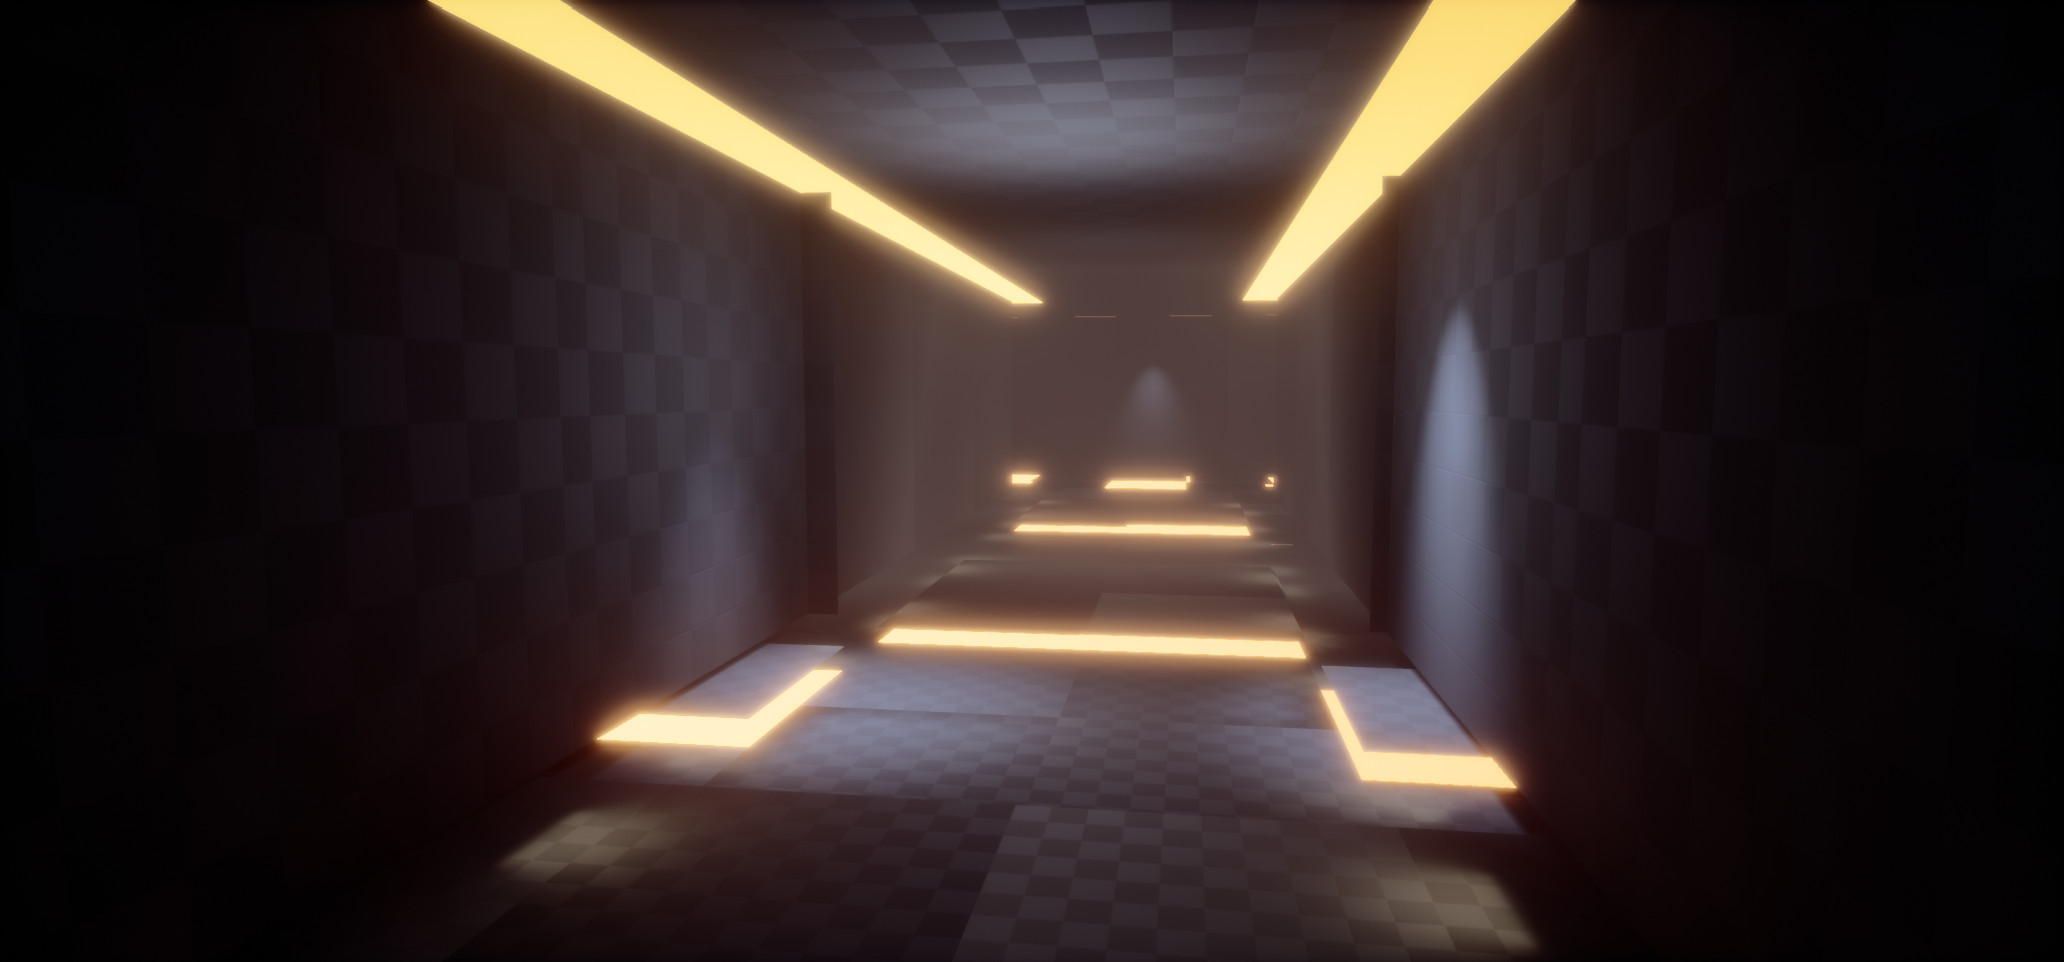 Basic Lighting and base mesh planes. These become tessellated within the Unreal Material shader